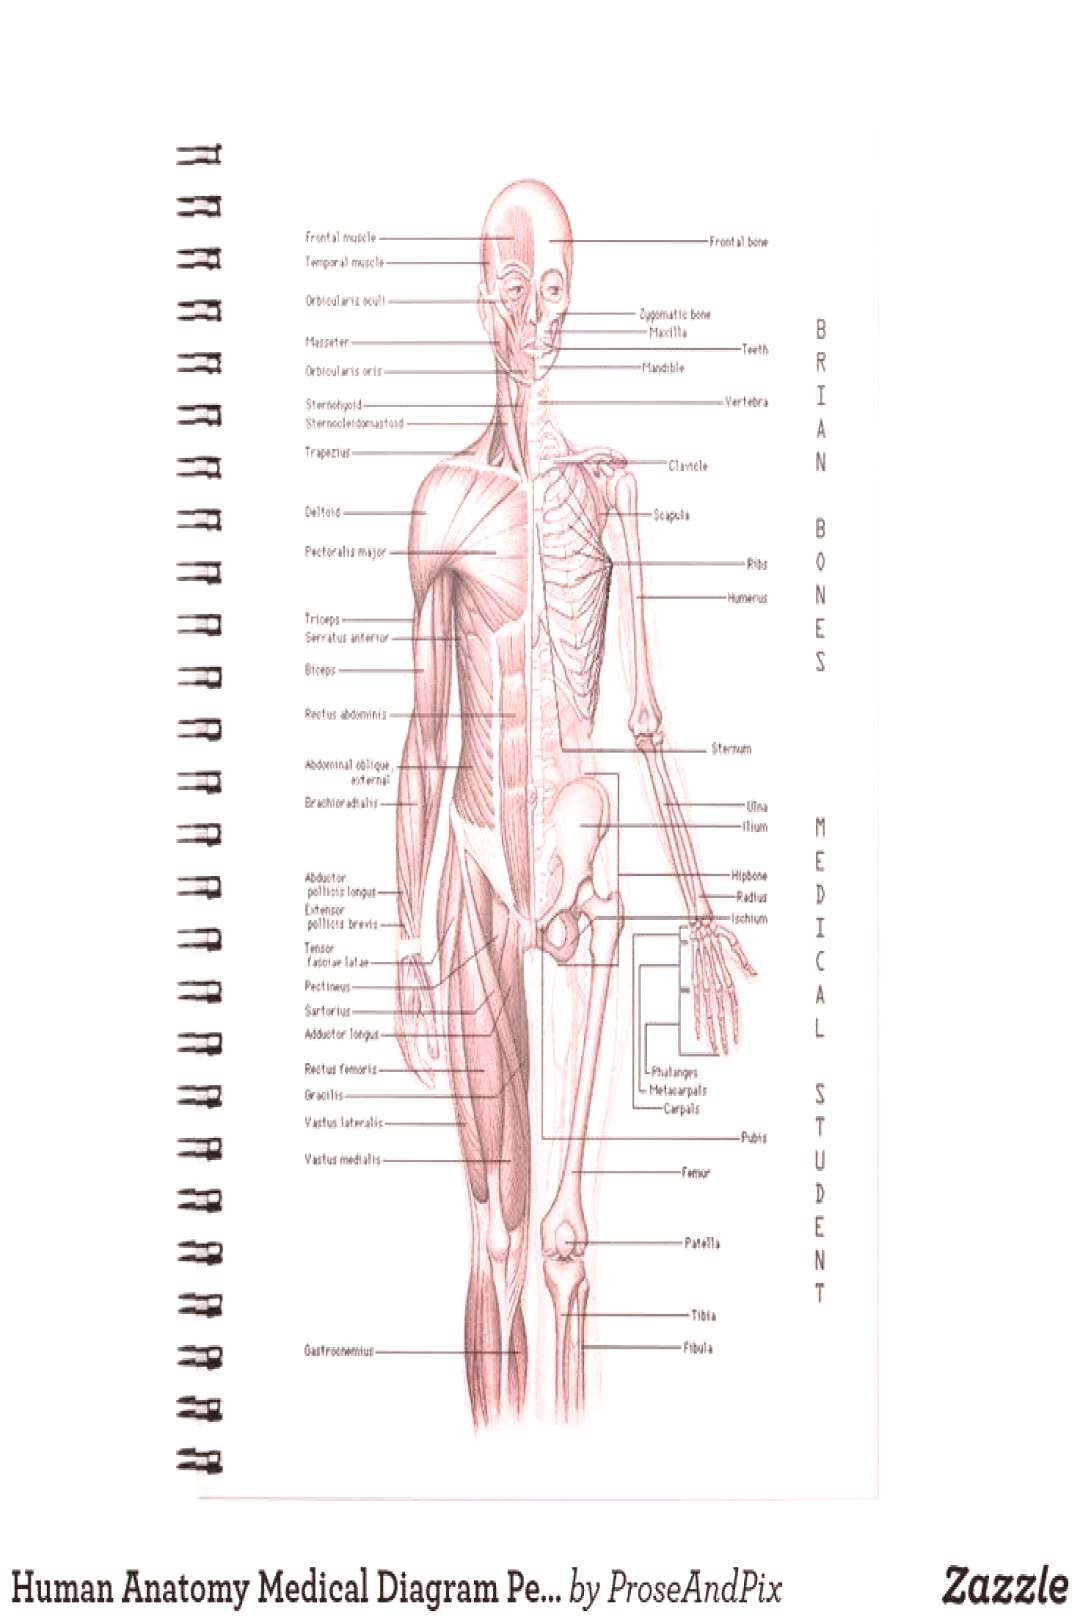 NEW: Human Anatomy Medical Diagram Personalized Sc